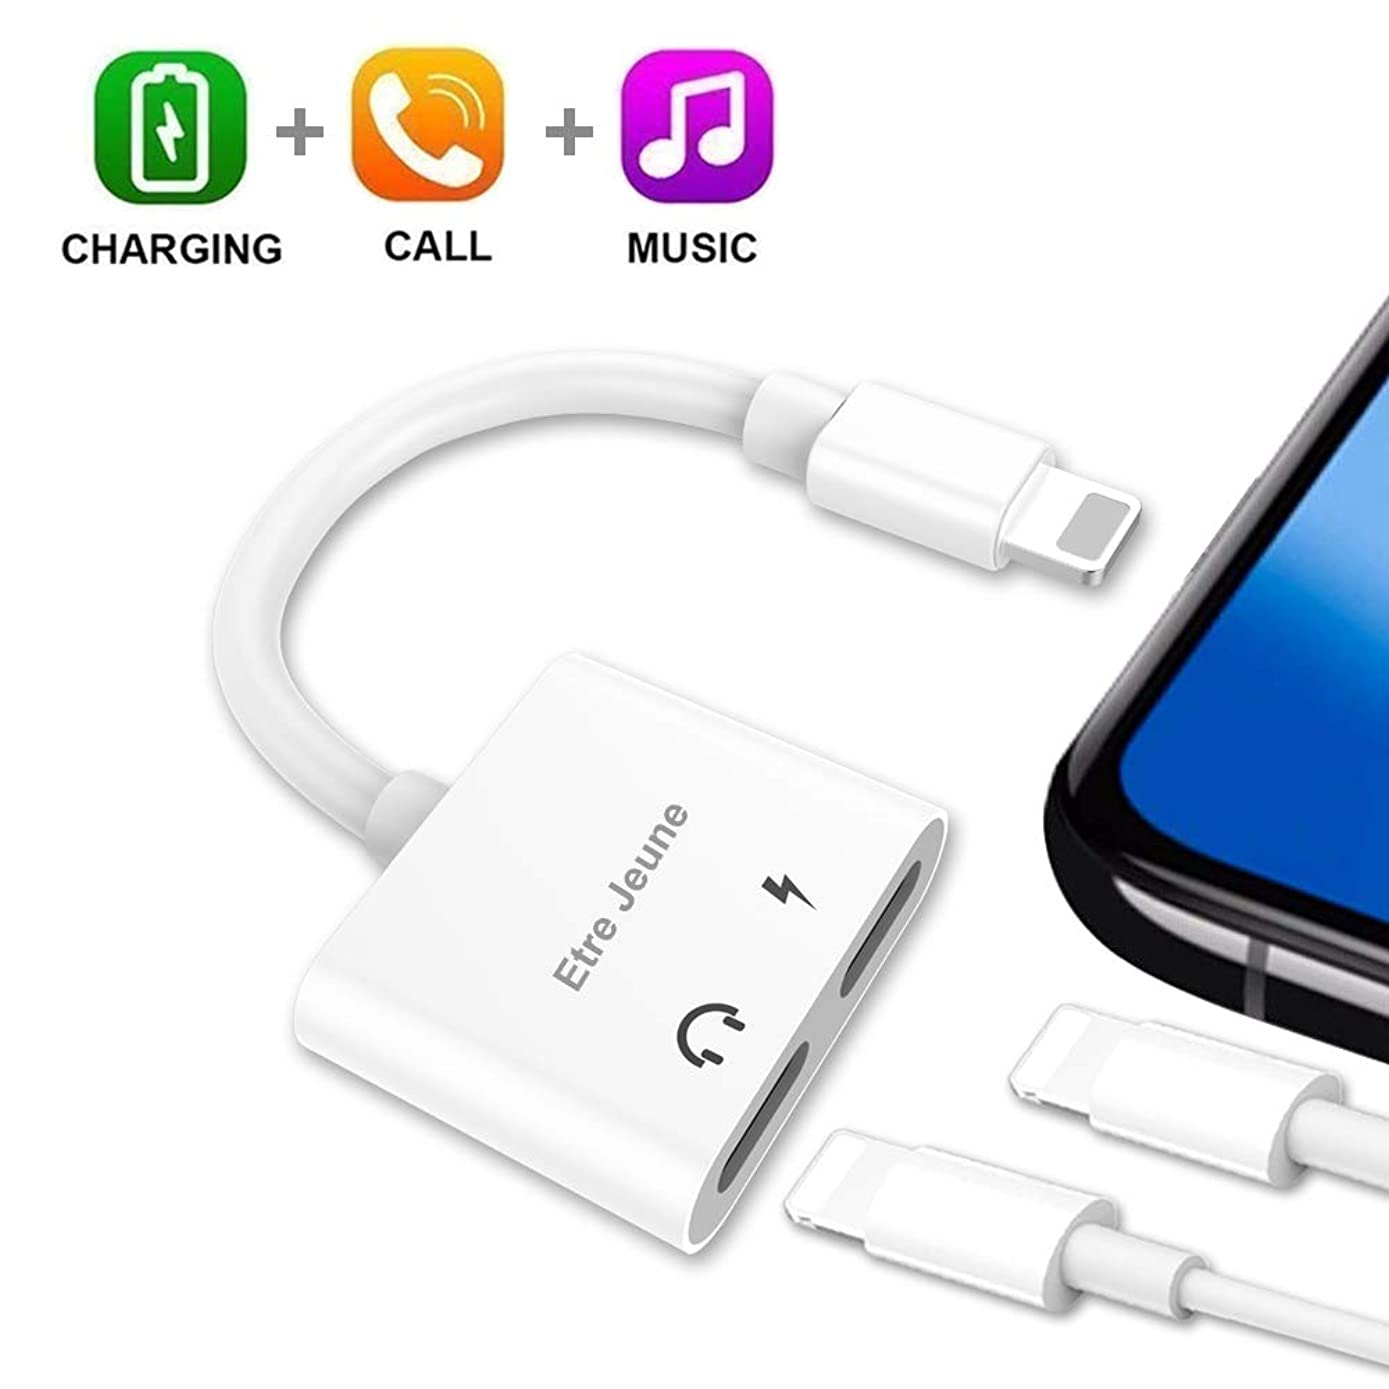 Etre Jeune Dual Adapter Splitter for Headphones and Charger, 4 in 1 Headphone Audio Aux Cable Compatible with iPhone X/ 7/Plus/ 8/Plus, Support Music Control/ Phone Call